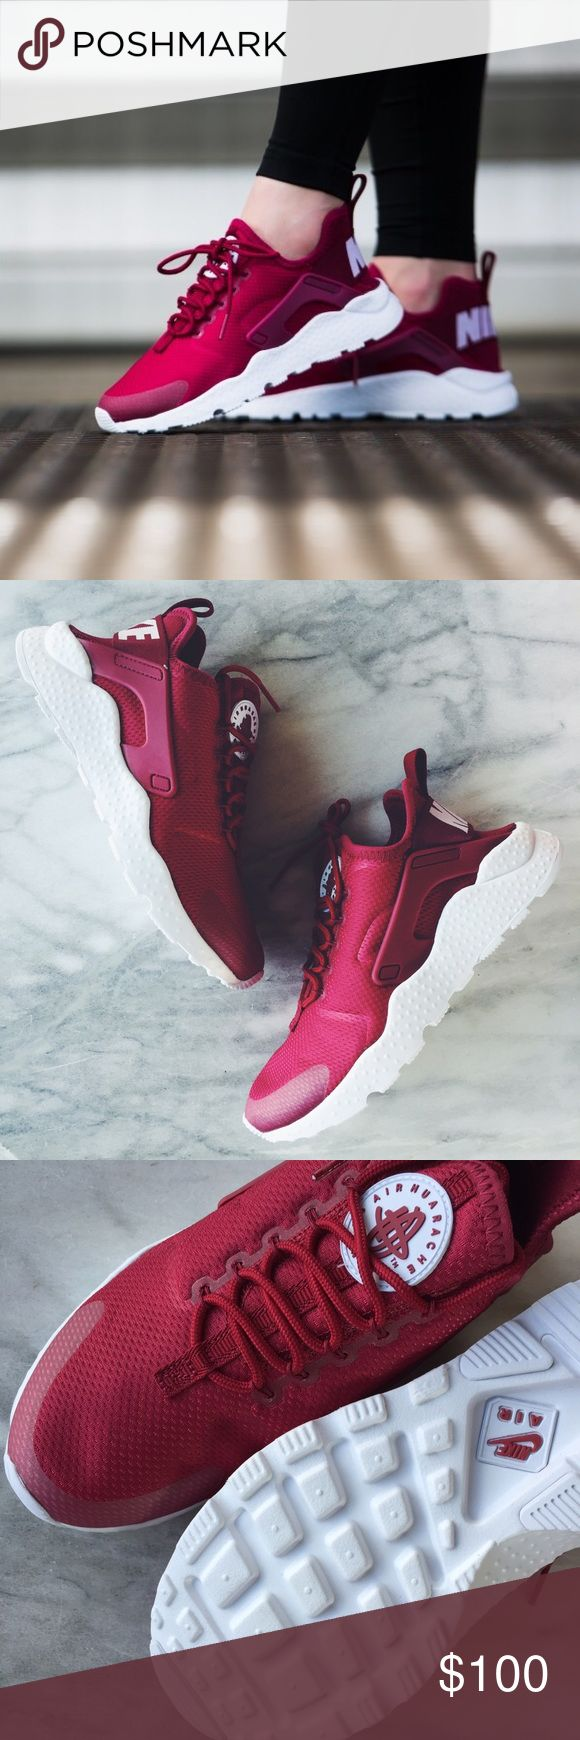 "Nike Air Huarache Ultra Sneakers •The Nike Air Huarache Ultra Women's Shoe is crafted with a stretchy one-piece upper, seamless molded details and an ultra-lightweight outsole for a streamlined look and easy packing into your bag. Color is ""Noble Red"" •W"